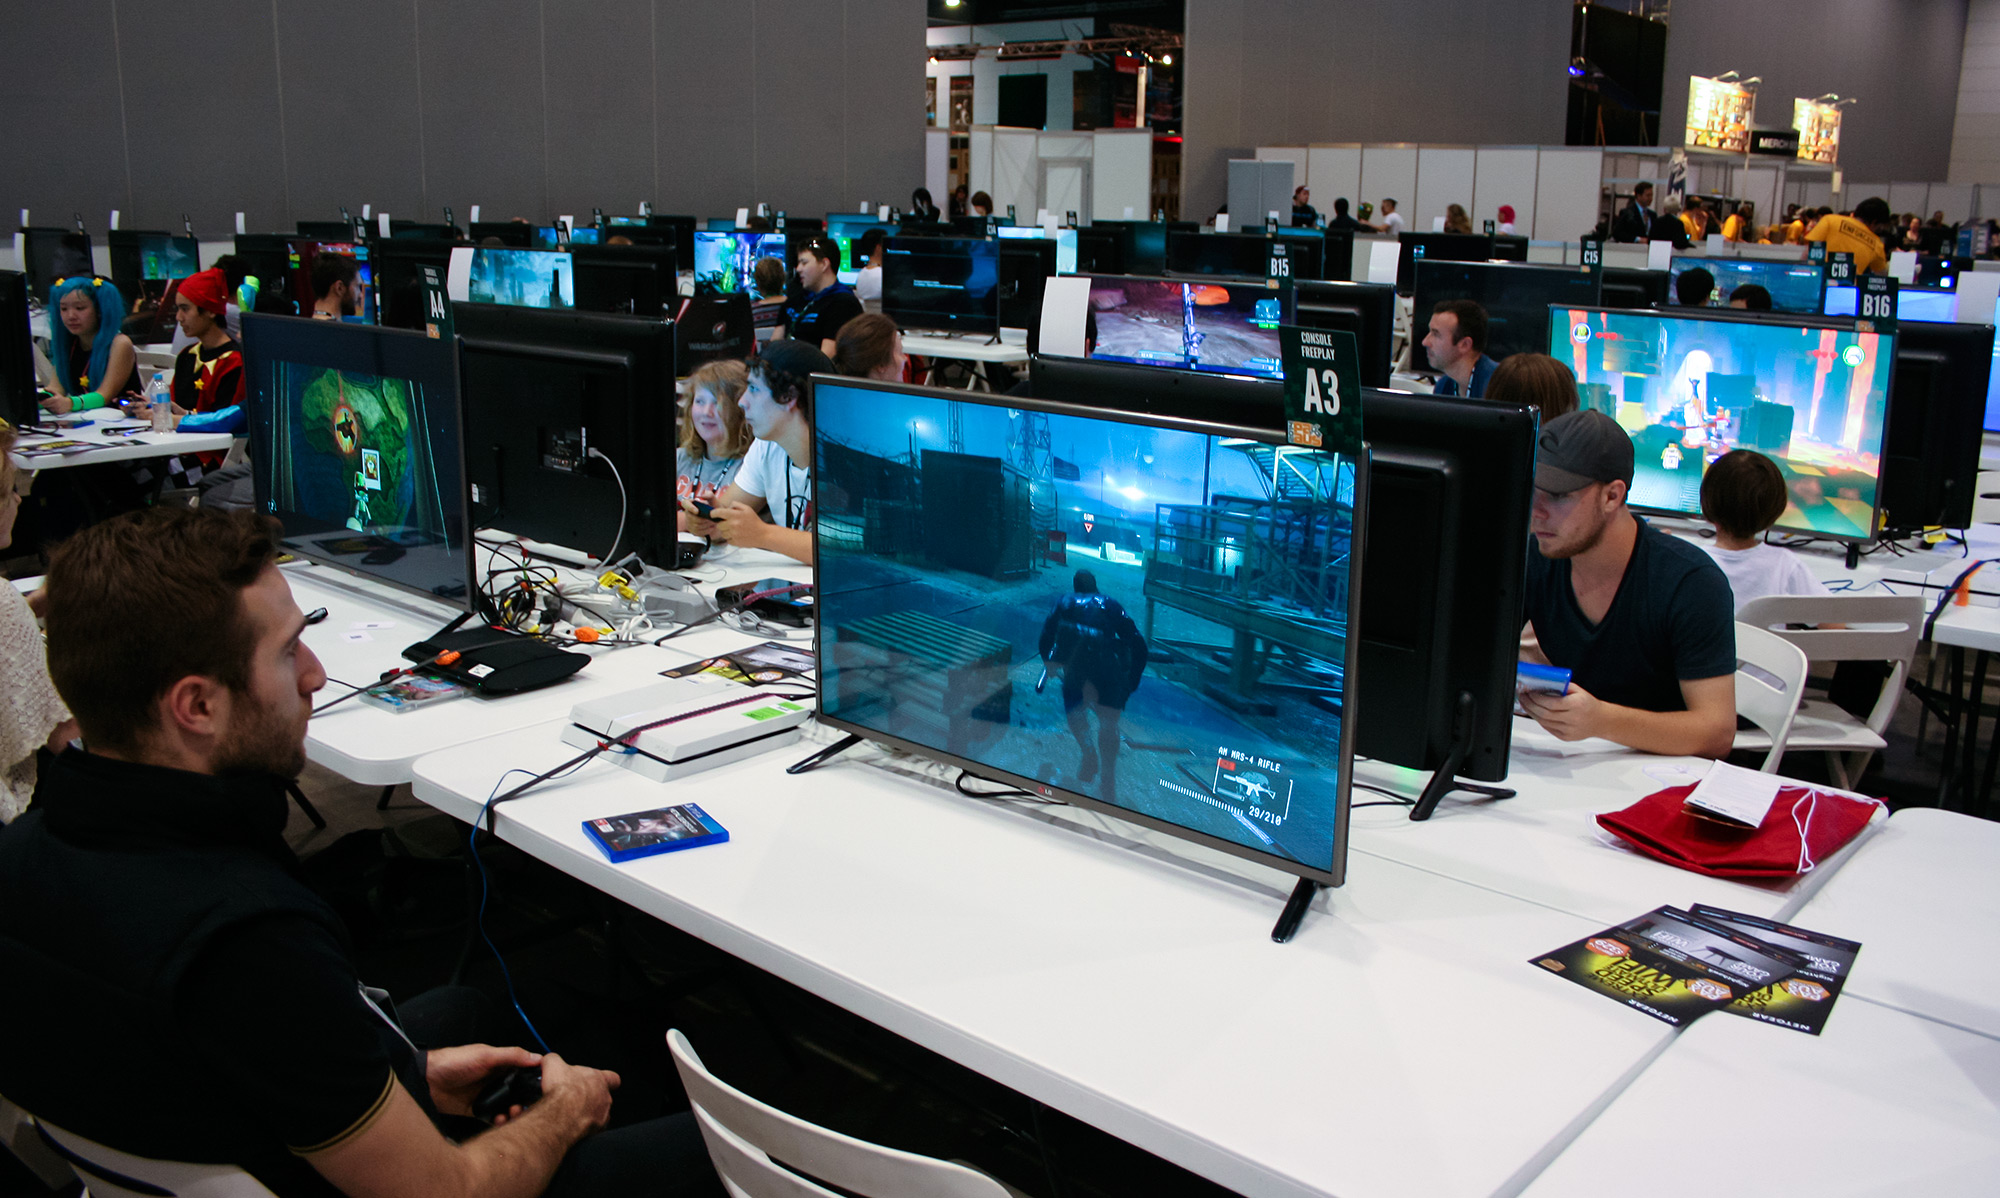 PAX Aus - Melbourne 2014 - Console Freeplay